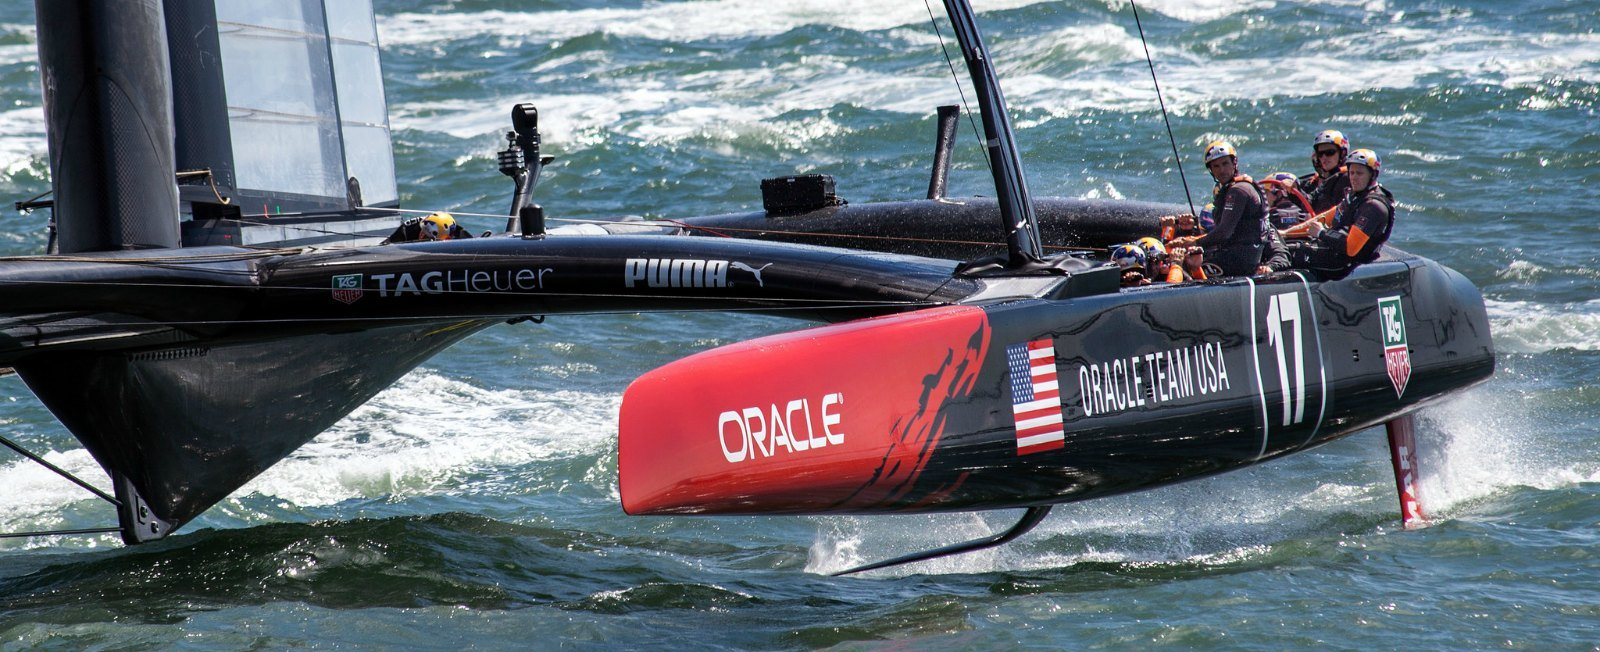 America's Team Oracle Snatch the Cup